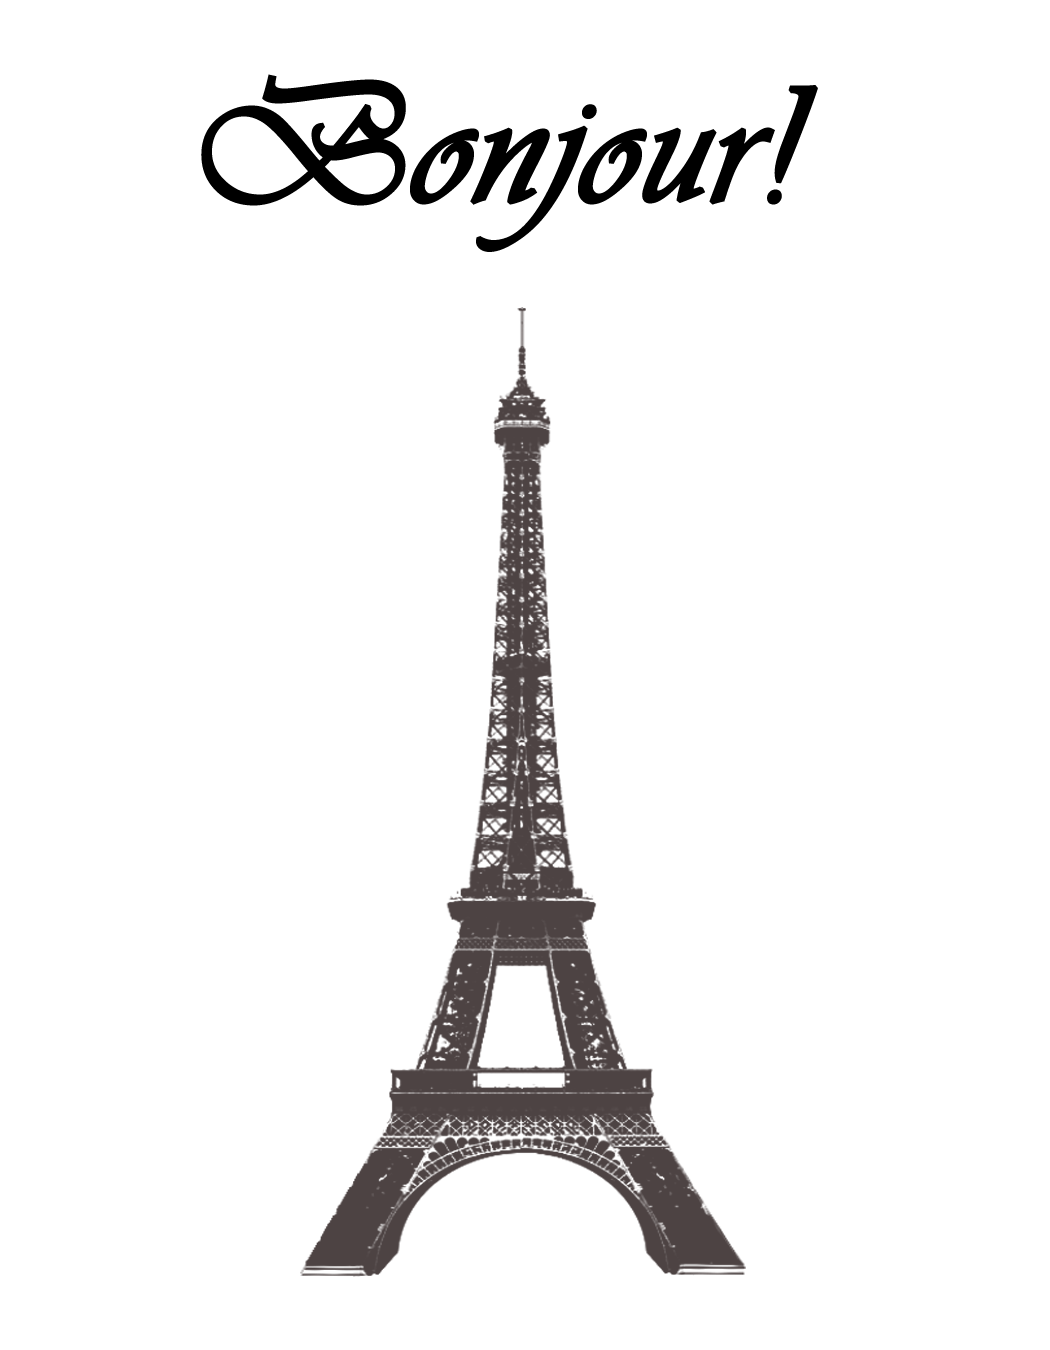 Download Eiffel Tower City At Night Wallpaper